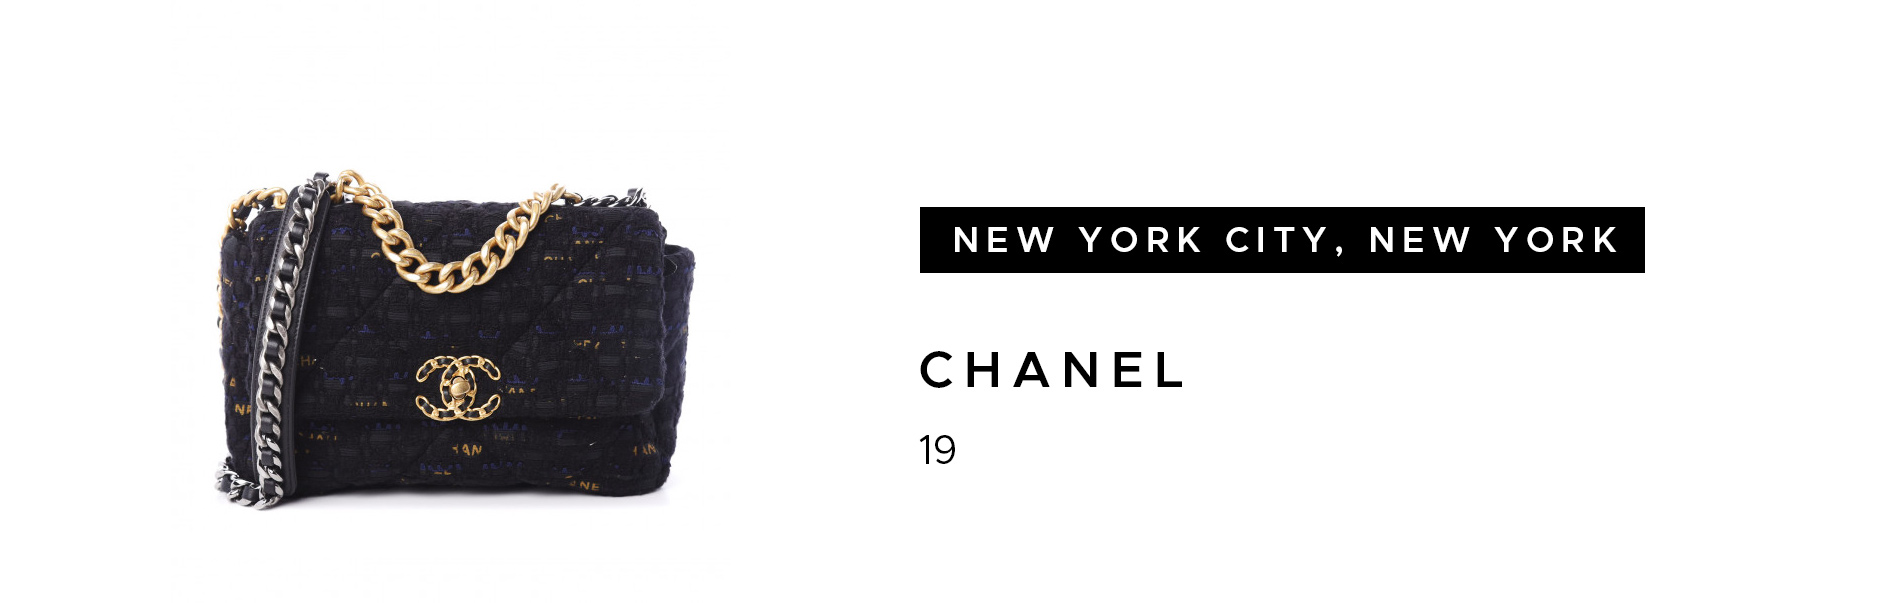 New York City, New York Chanel 19